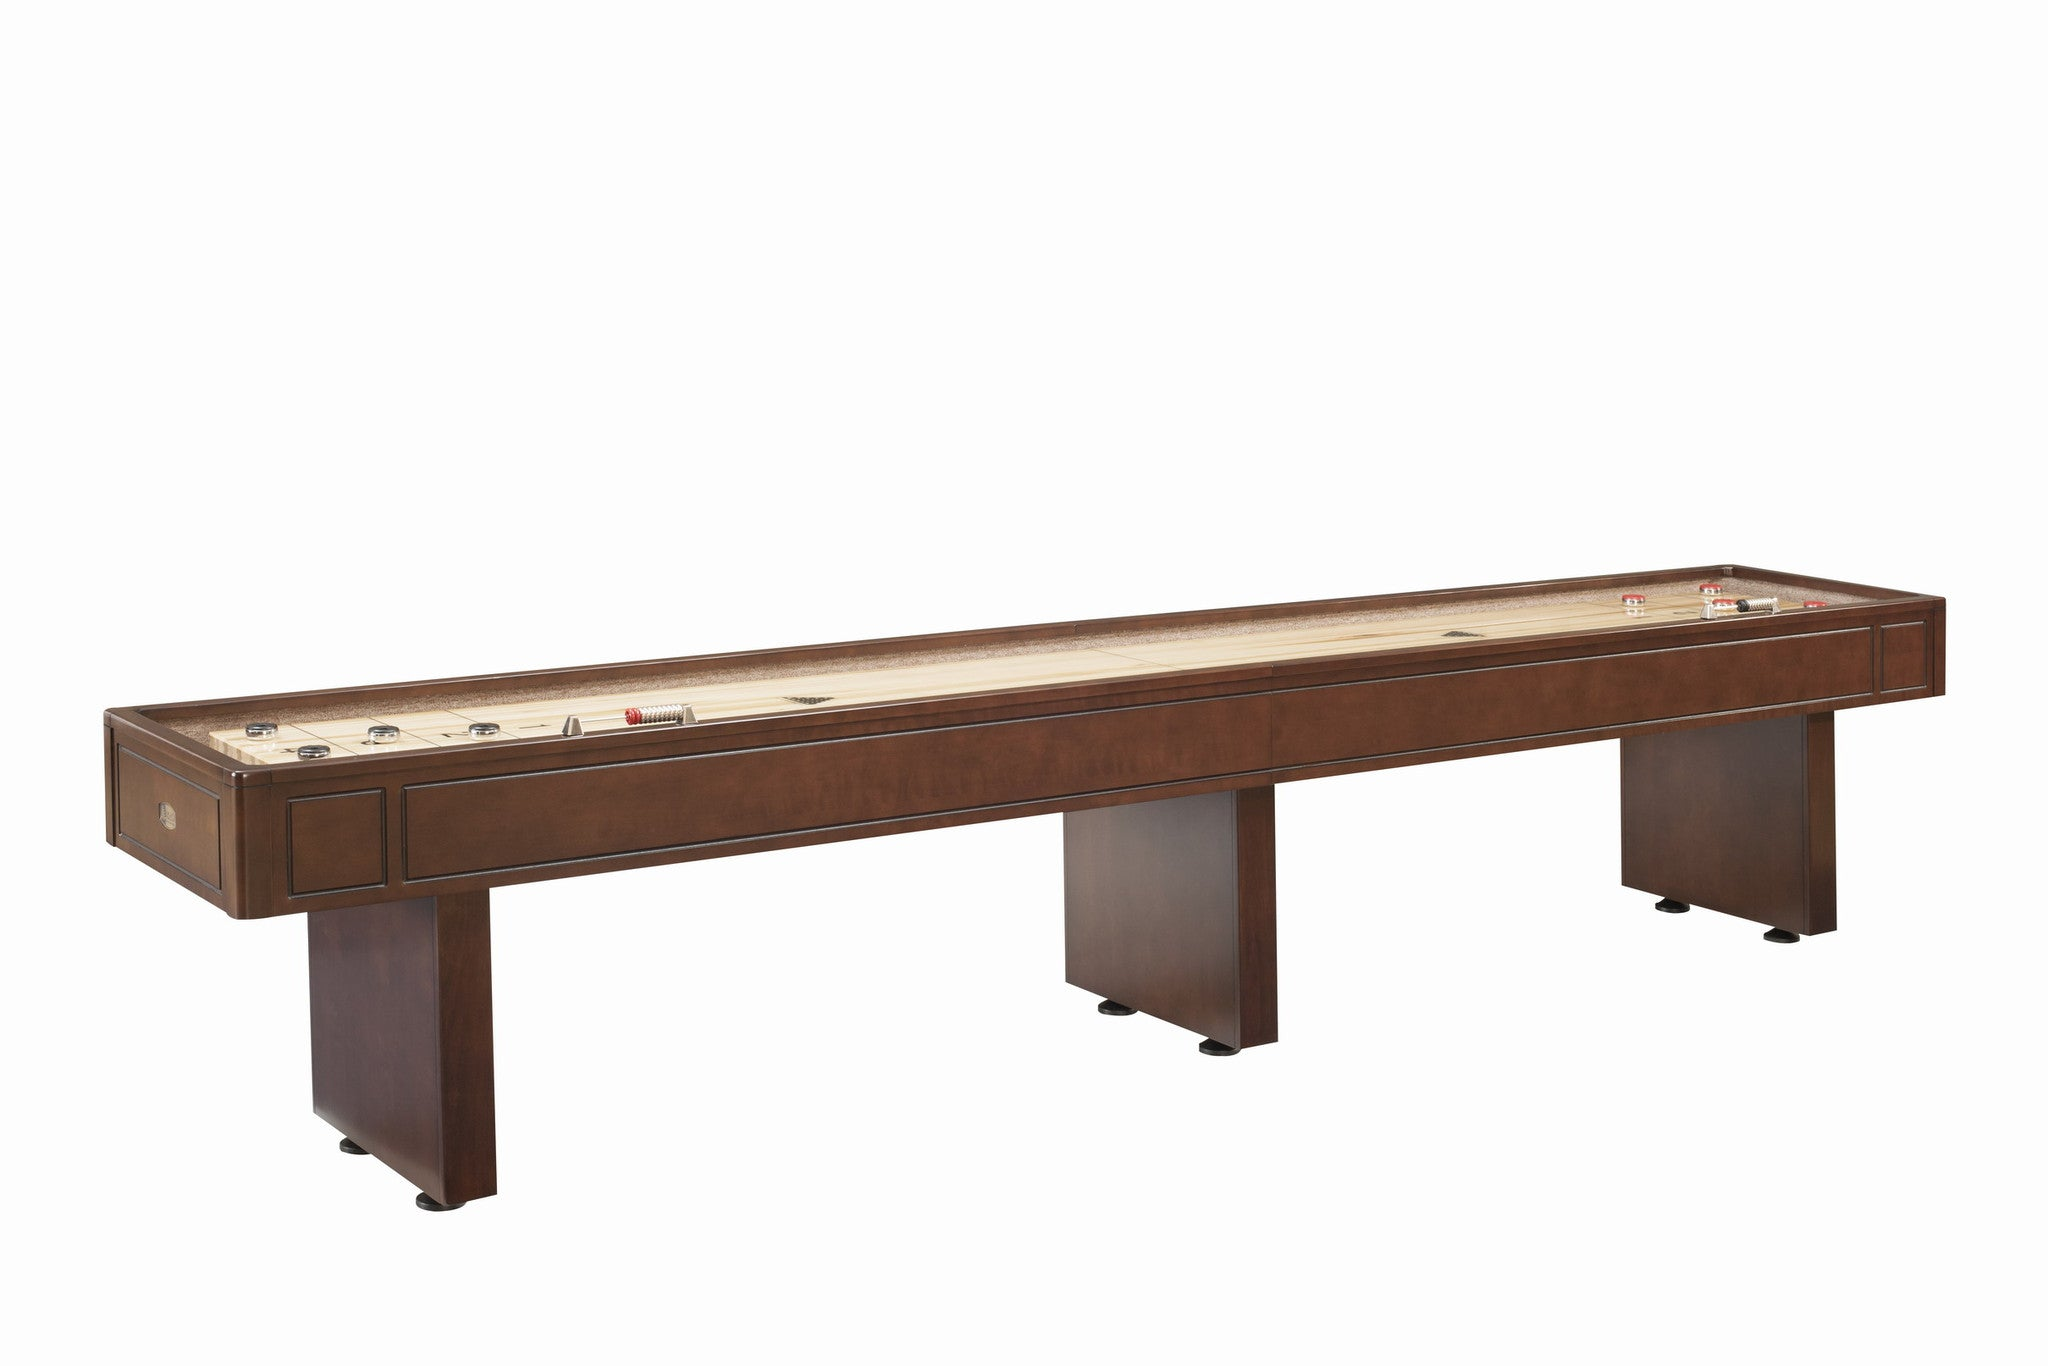 collection proudly sale this shuffleboard kush design feature tables table sculptural for finest